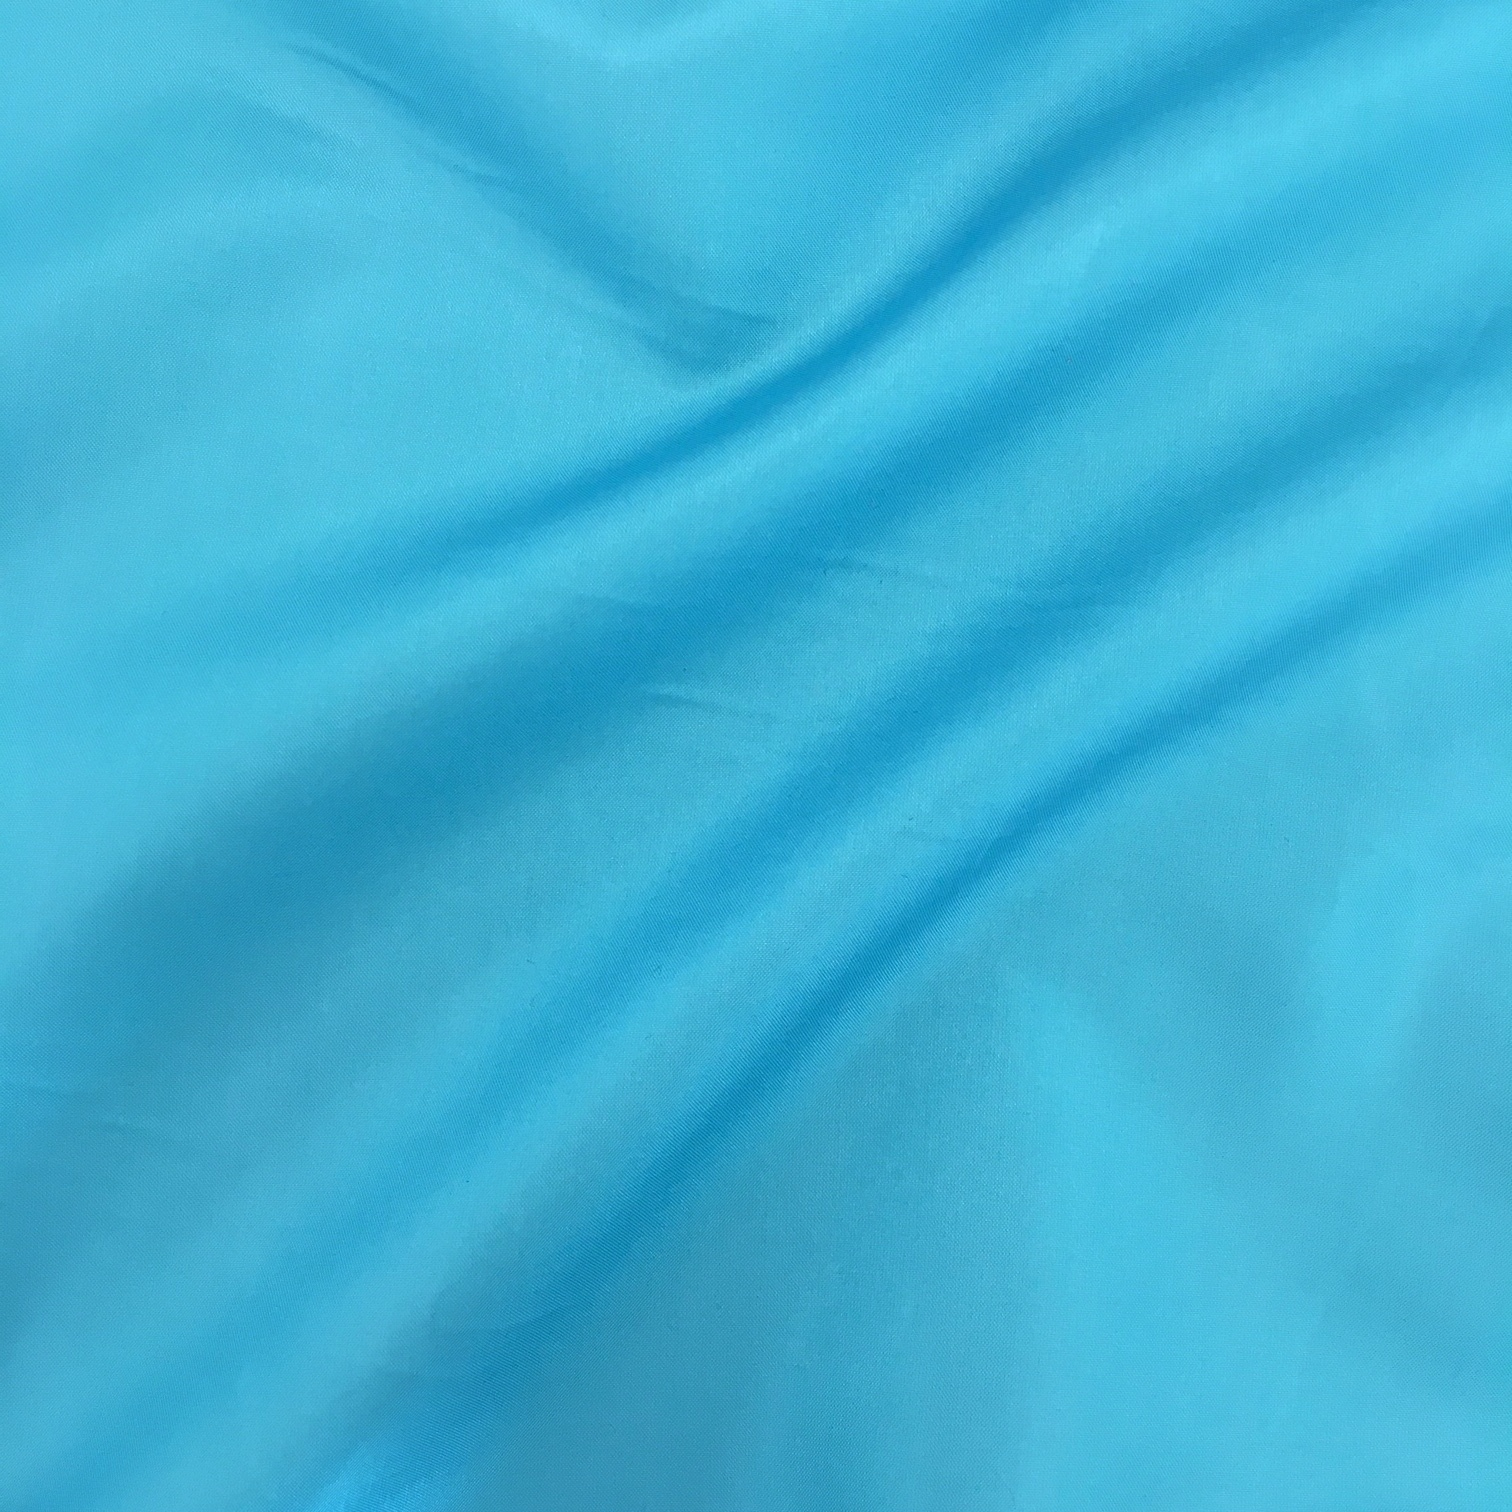 50 metres of Habitue Lining - TURQUOISE